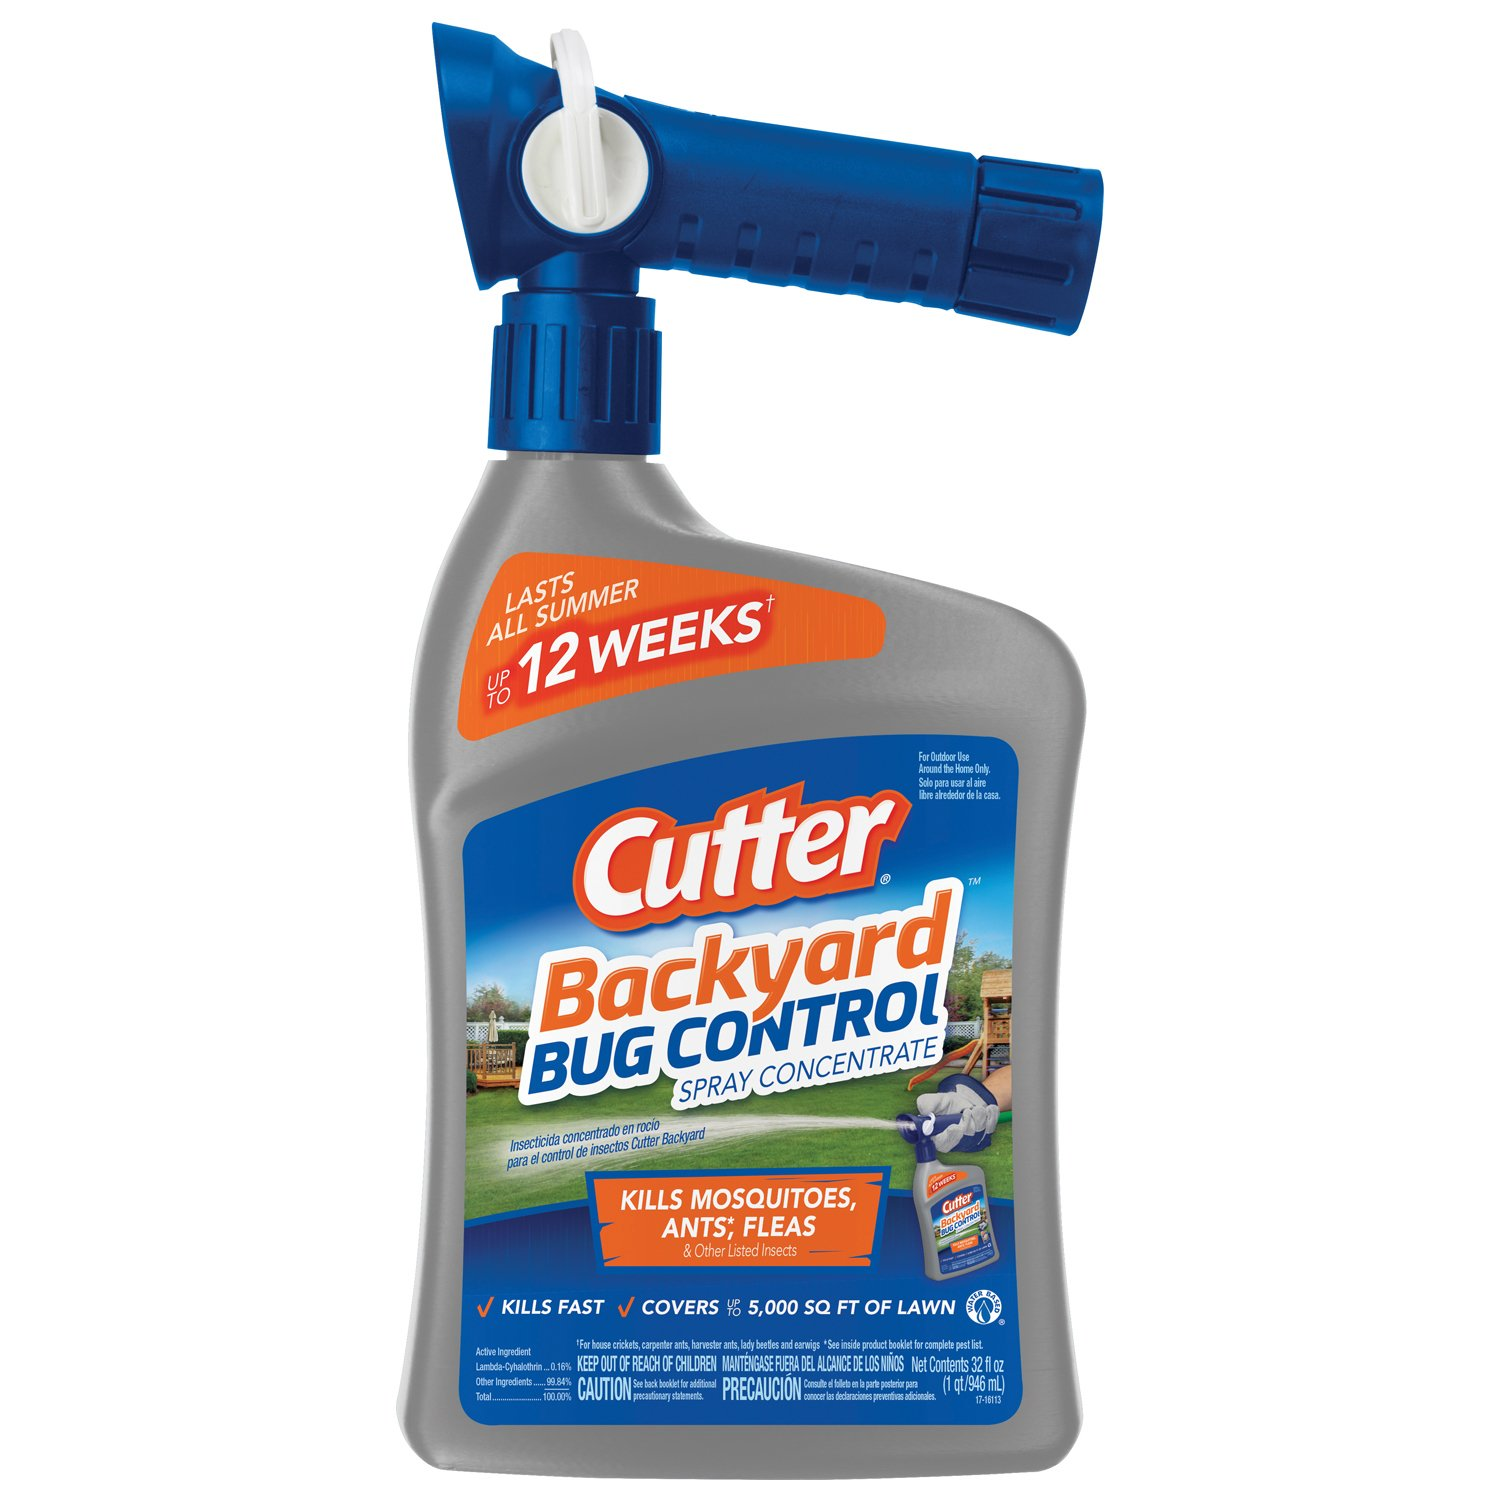 Cutter Backyard Bug Control Spray Concentrate, 32-Ounce